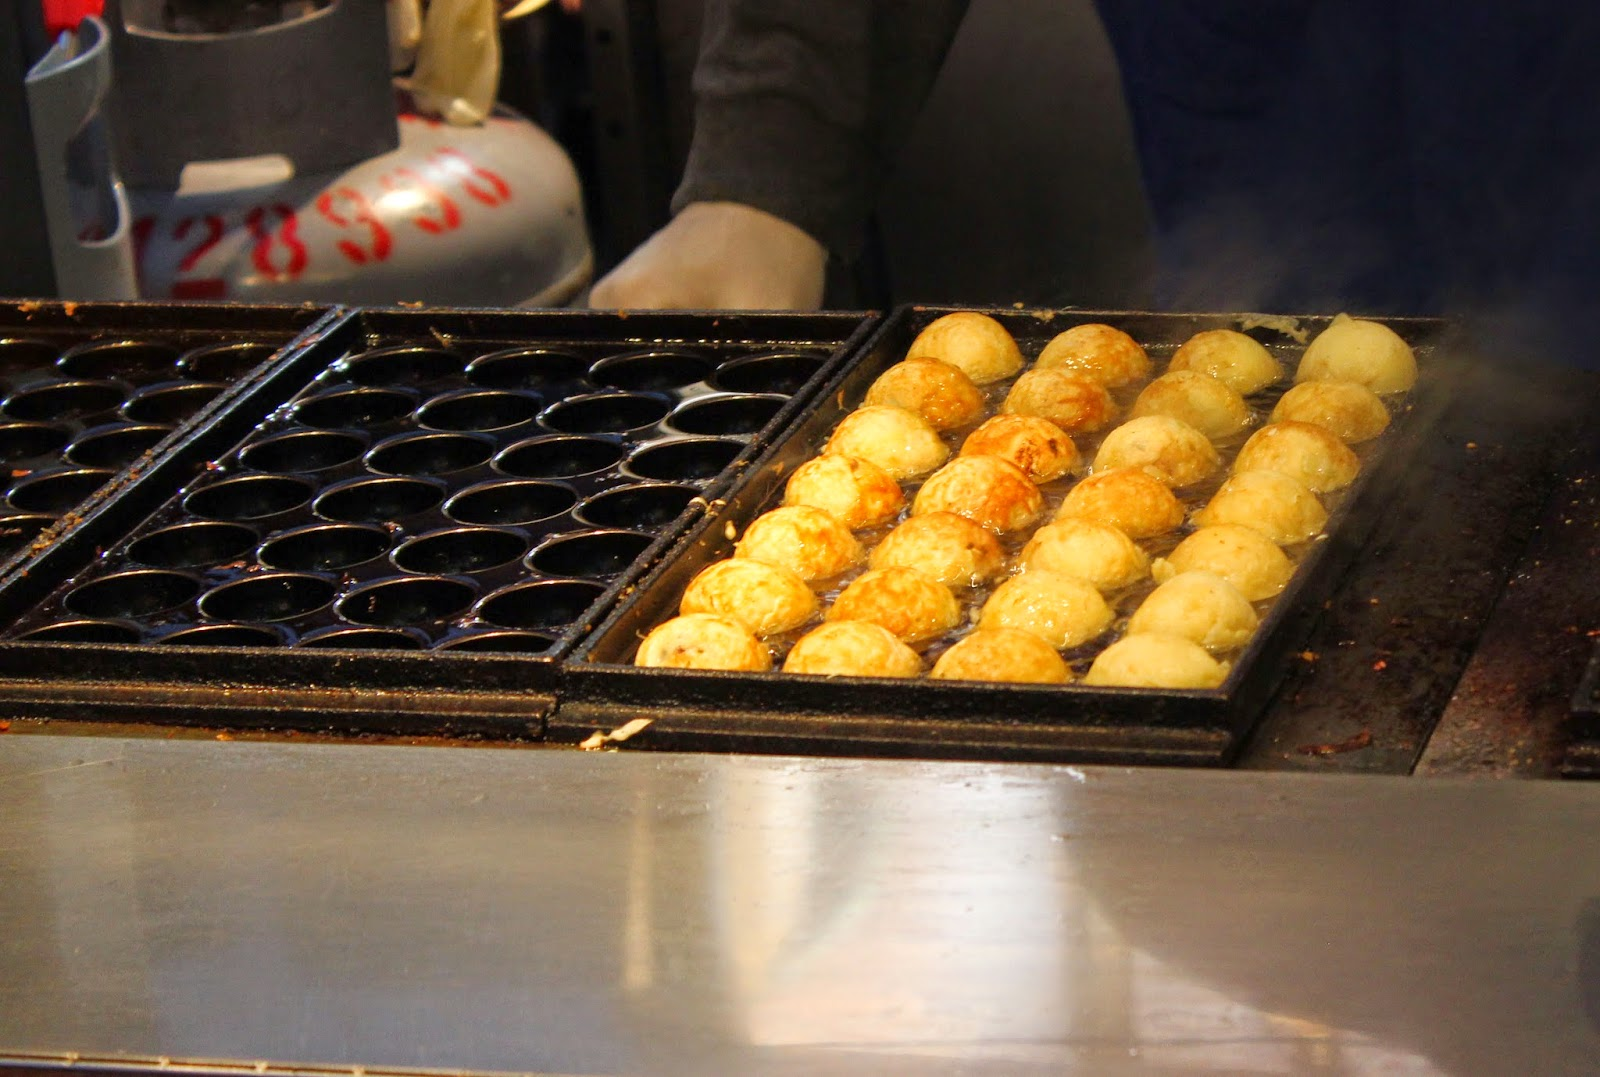 Shilin nightmarket takoyaki food